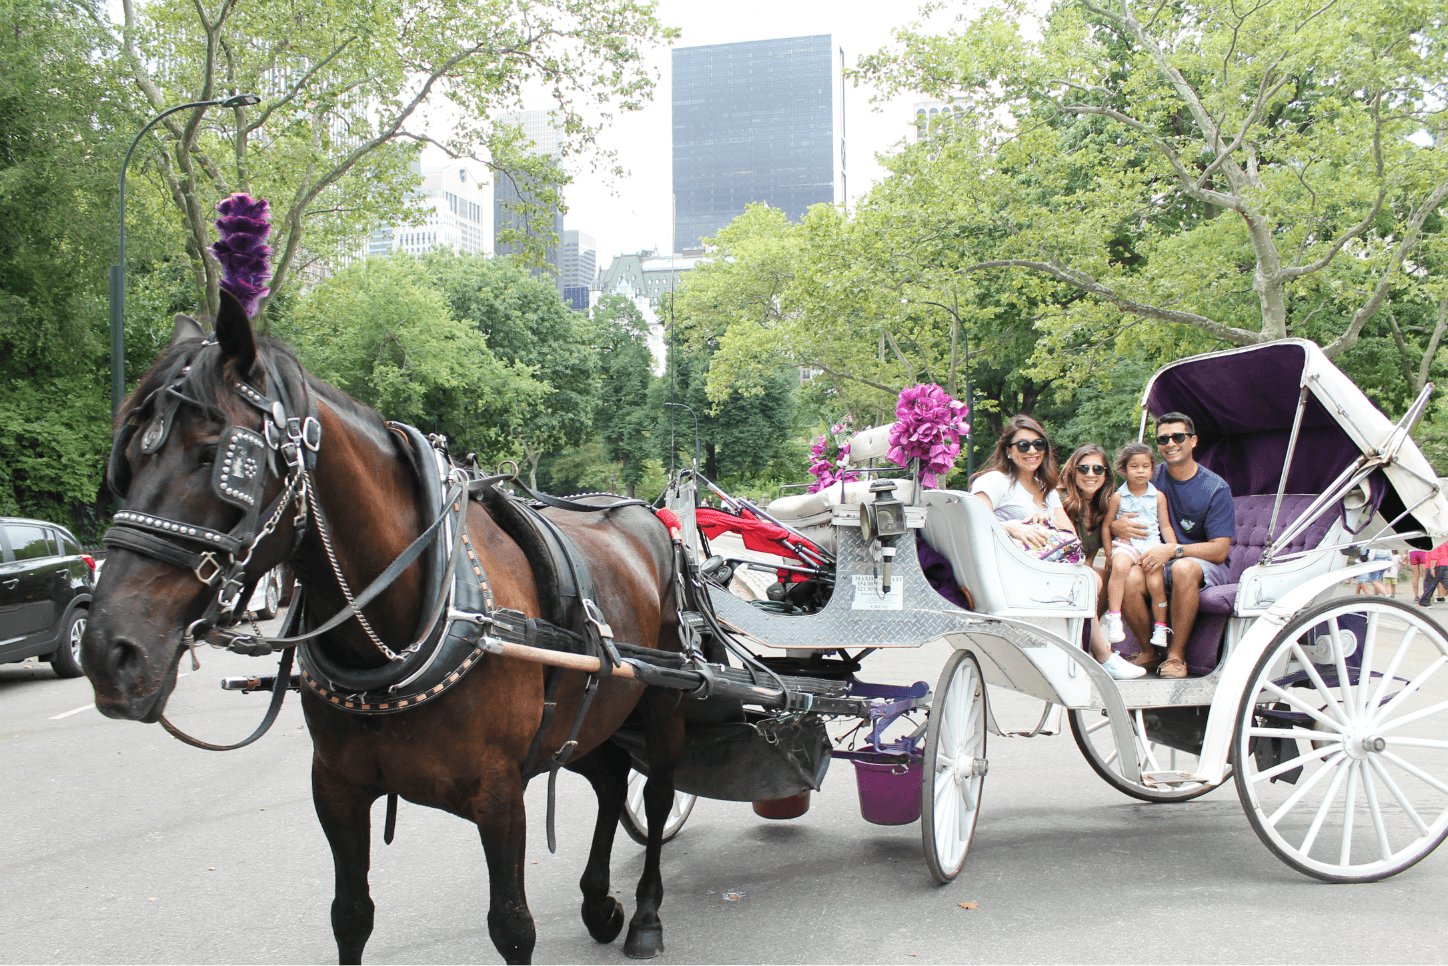 Kid-friendly activities in New York City | Kid-Friendly Activities in NYC. Fun things to do in NYC with your family. Central Park carriage ride.